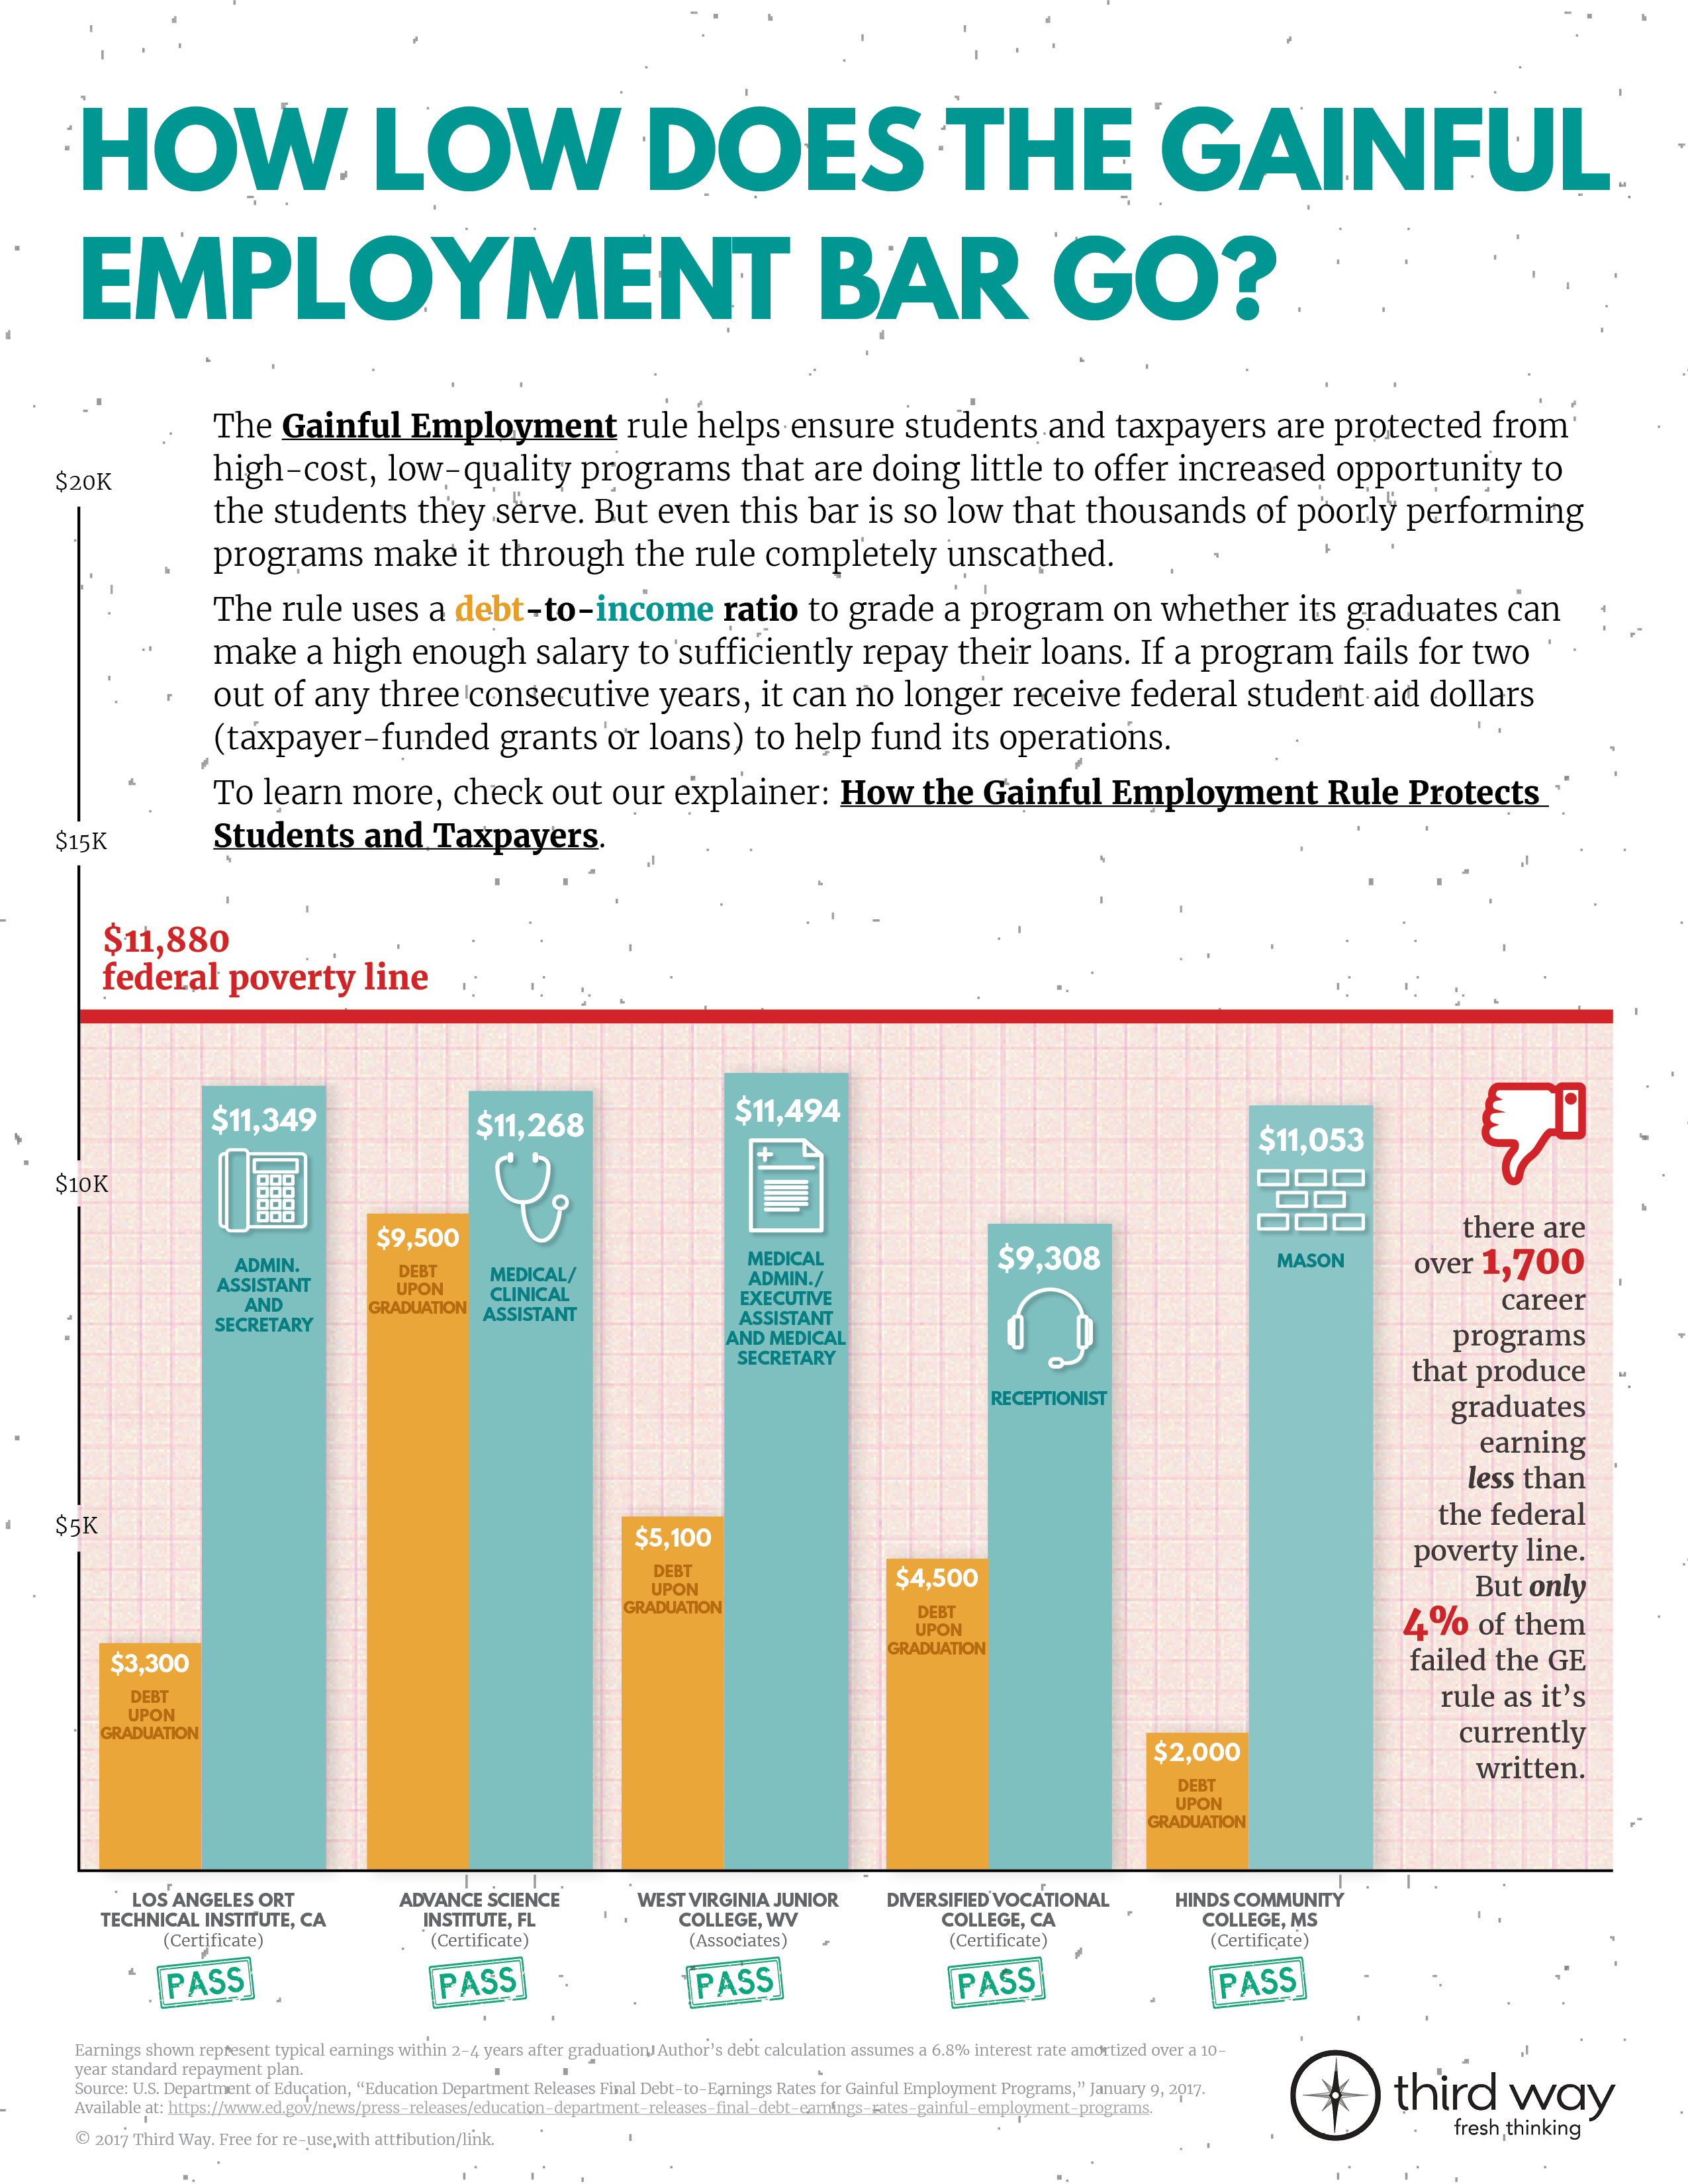 How Low Does the Gainful Employment Bar Go?